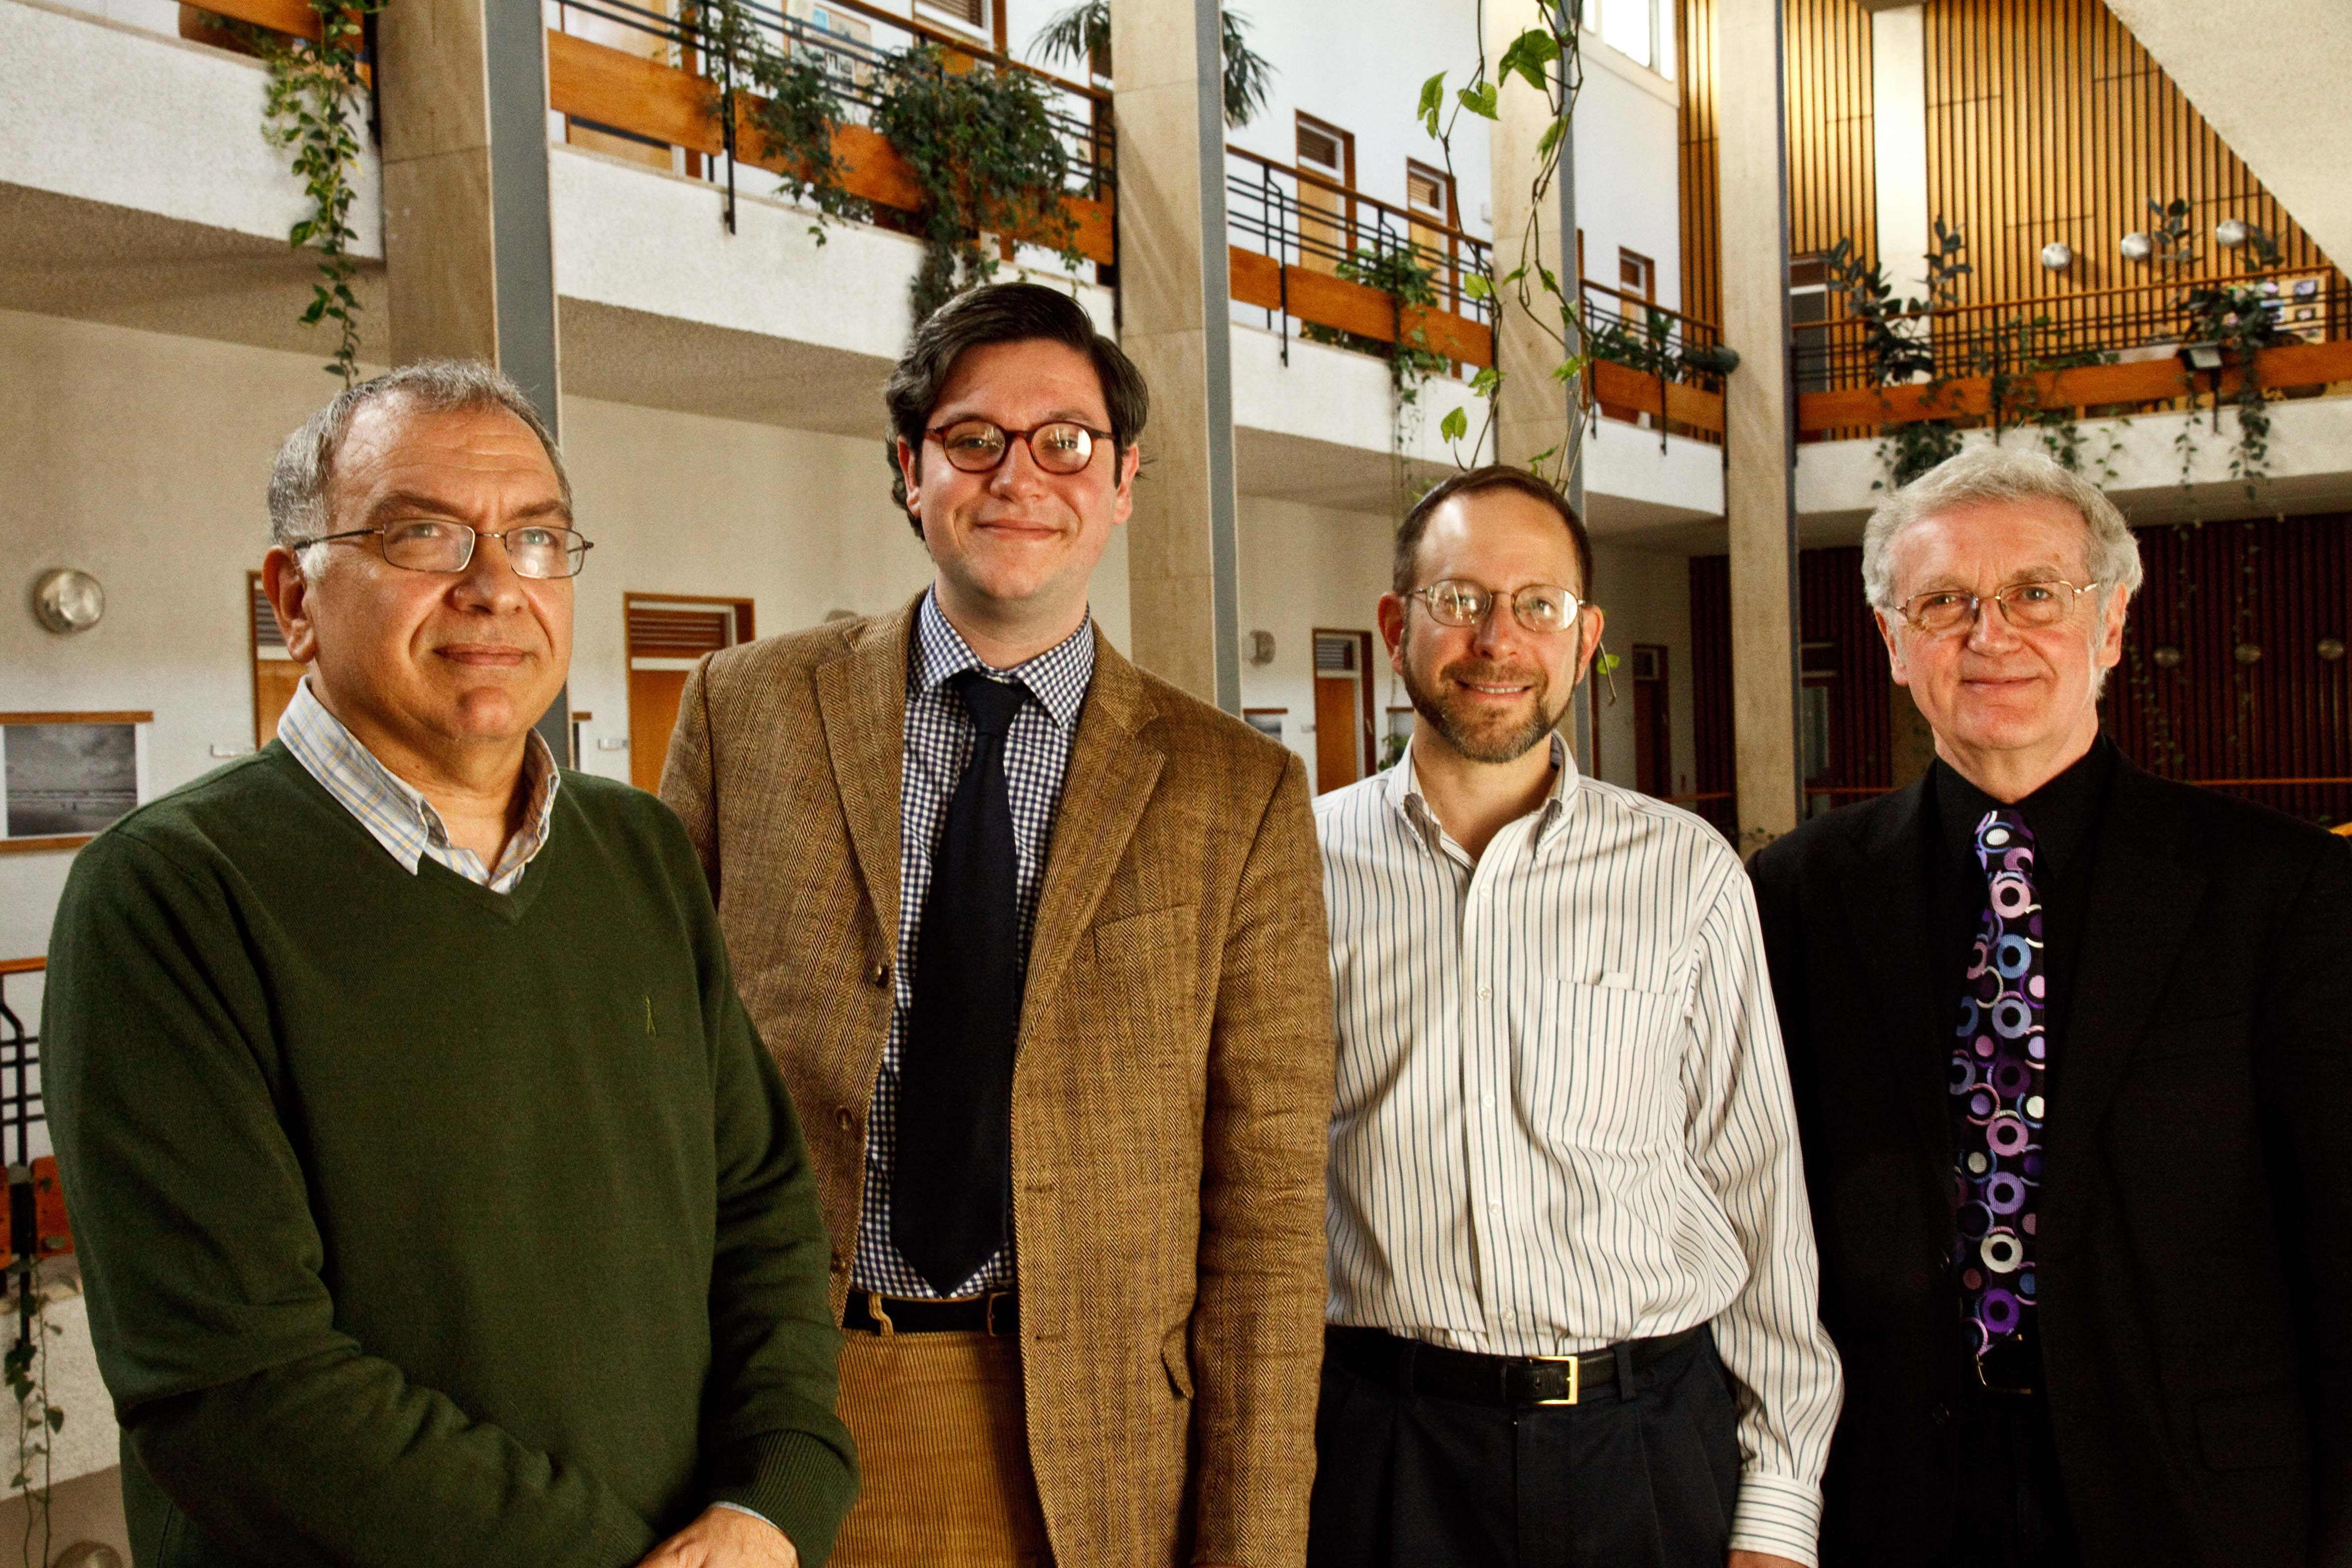 Group members: Meir Bar-Asher, Hebrew University; Andrew Kraebel, Yale; Cohen and Alastair Minnis, Yale.